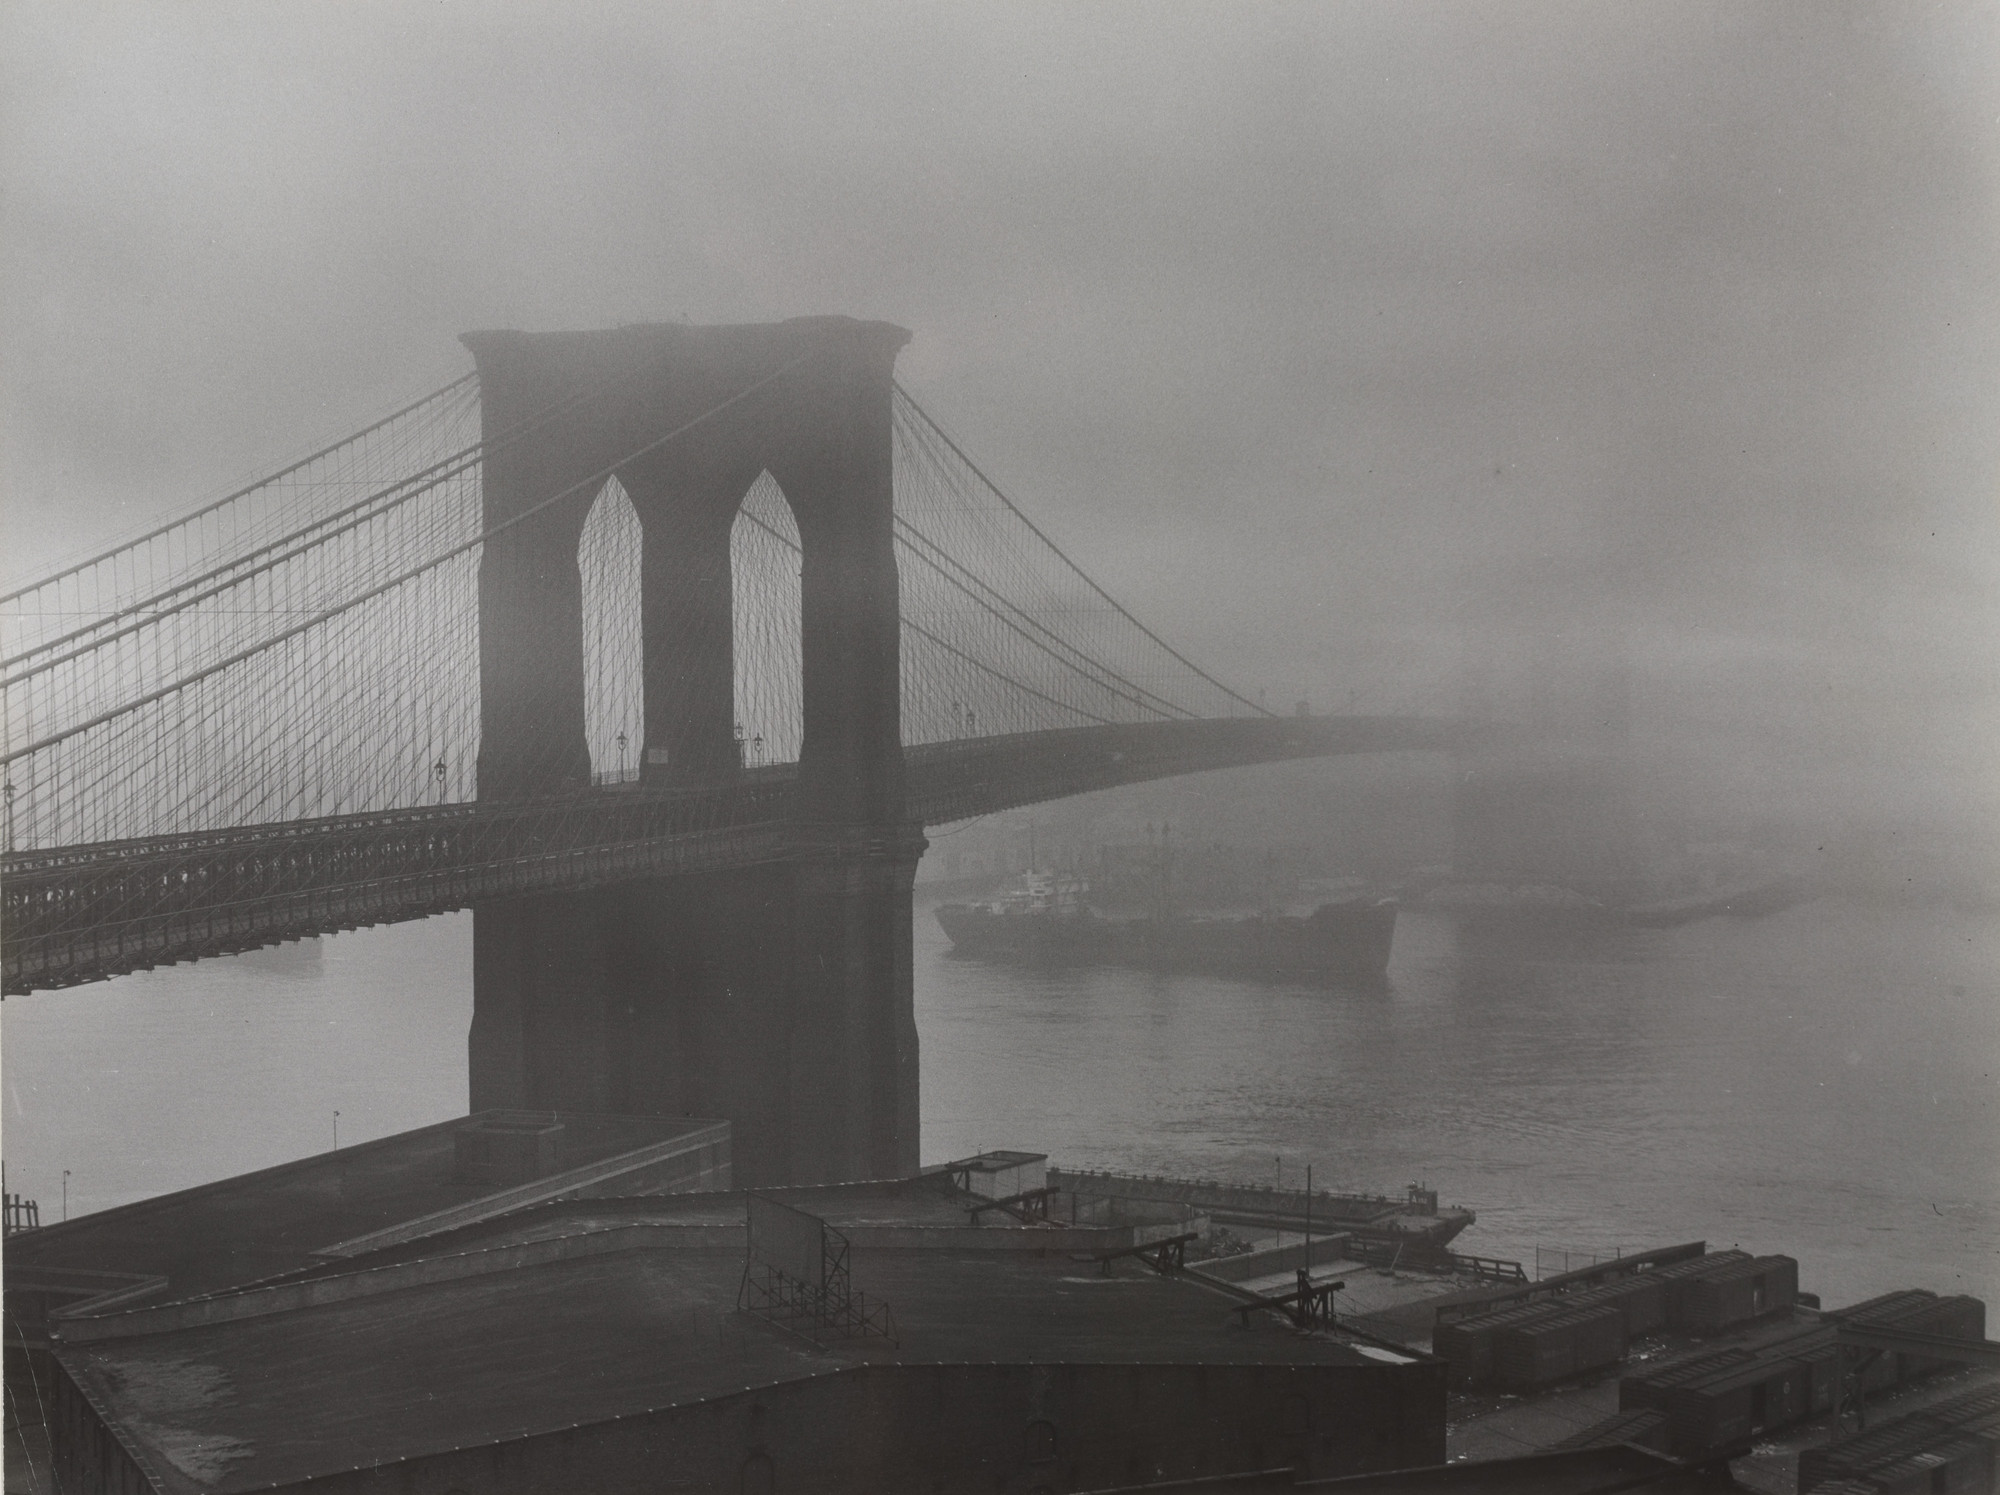 Andreas Feininger. Brooklyn Bridge in Fog. 1954